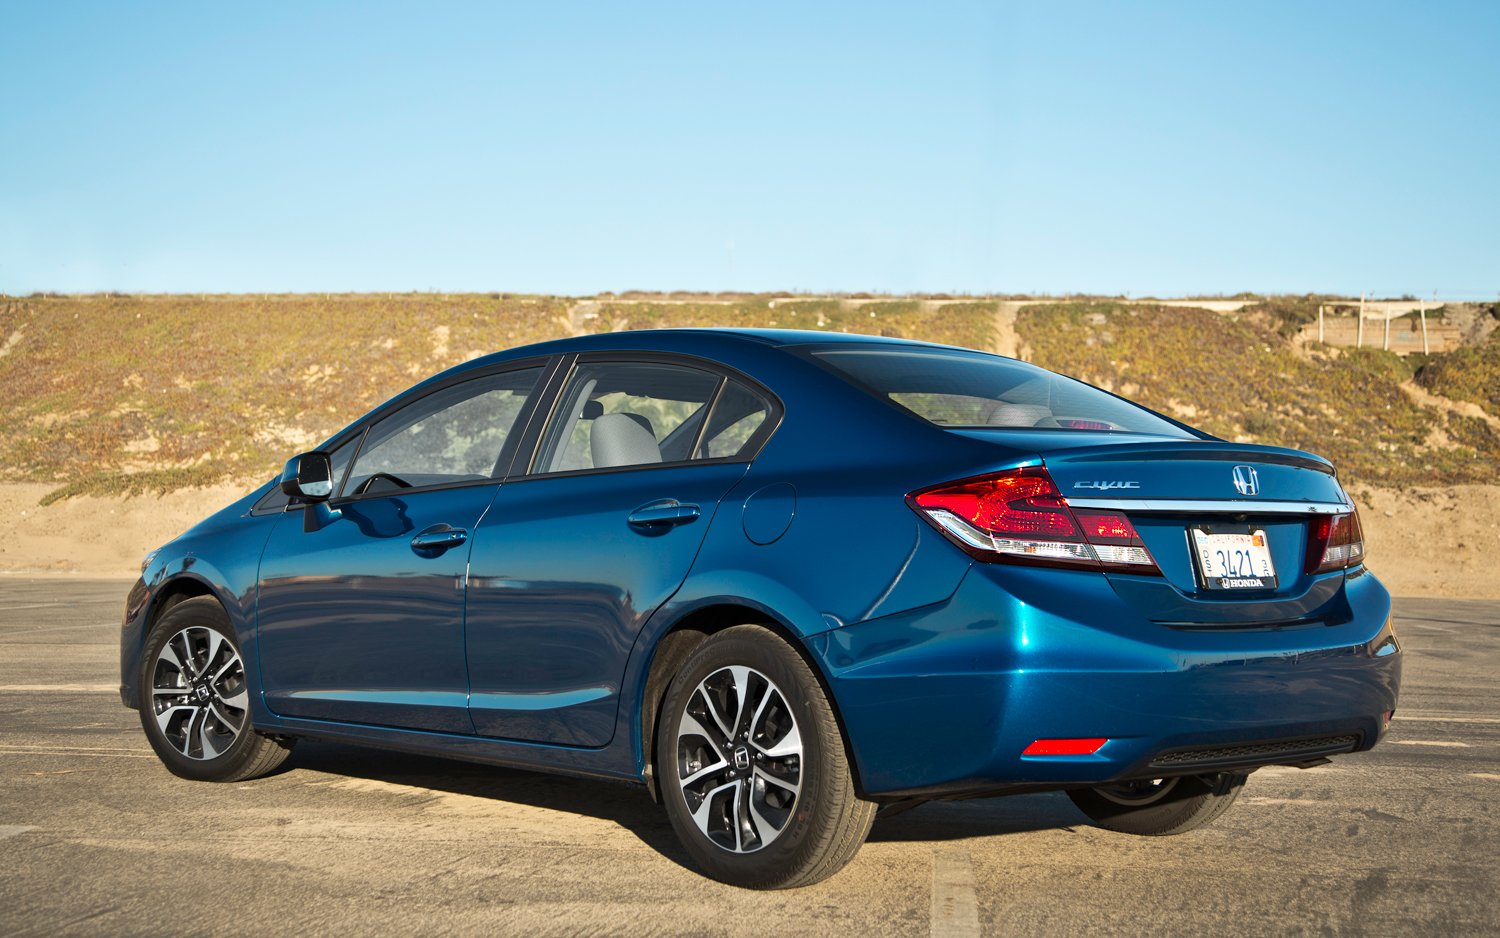 New 2013 Honda Civic Ex New Cars Reviews On This Month